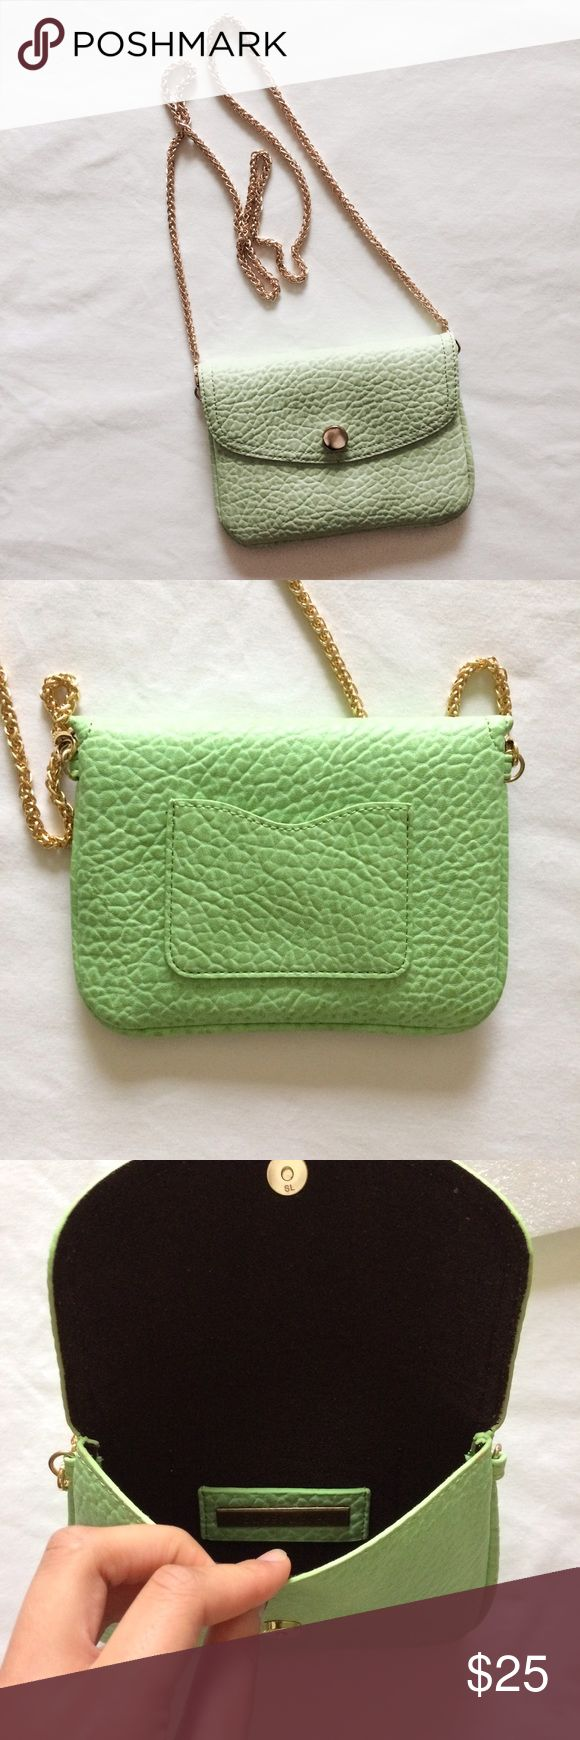 "Green Crossbody Purse Never used. Brand new. Magnetic closure. By brand ""Street Level."" You can buy this brand at Nordstrom. Neon green color with gold chain. Has a pocket on the back which could fit a business card or credit card. Street Level Bags Crossbody Bags"